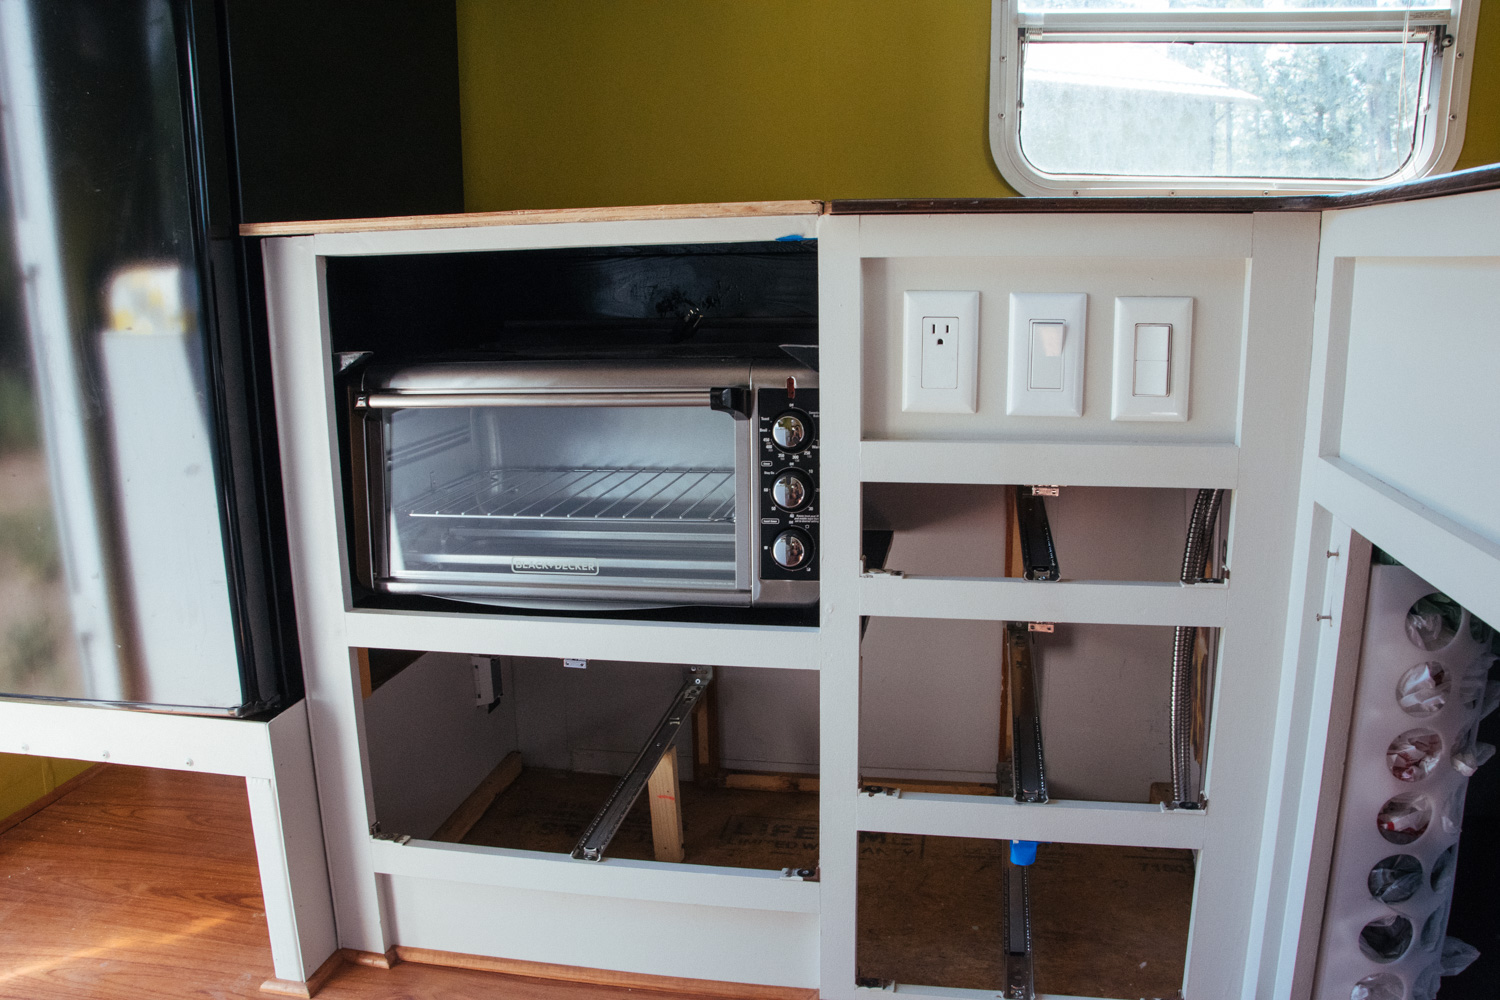 Our new electric oven is actually an extra large countertop toaster oven. We also use an induction countertop cooktop.